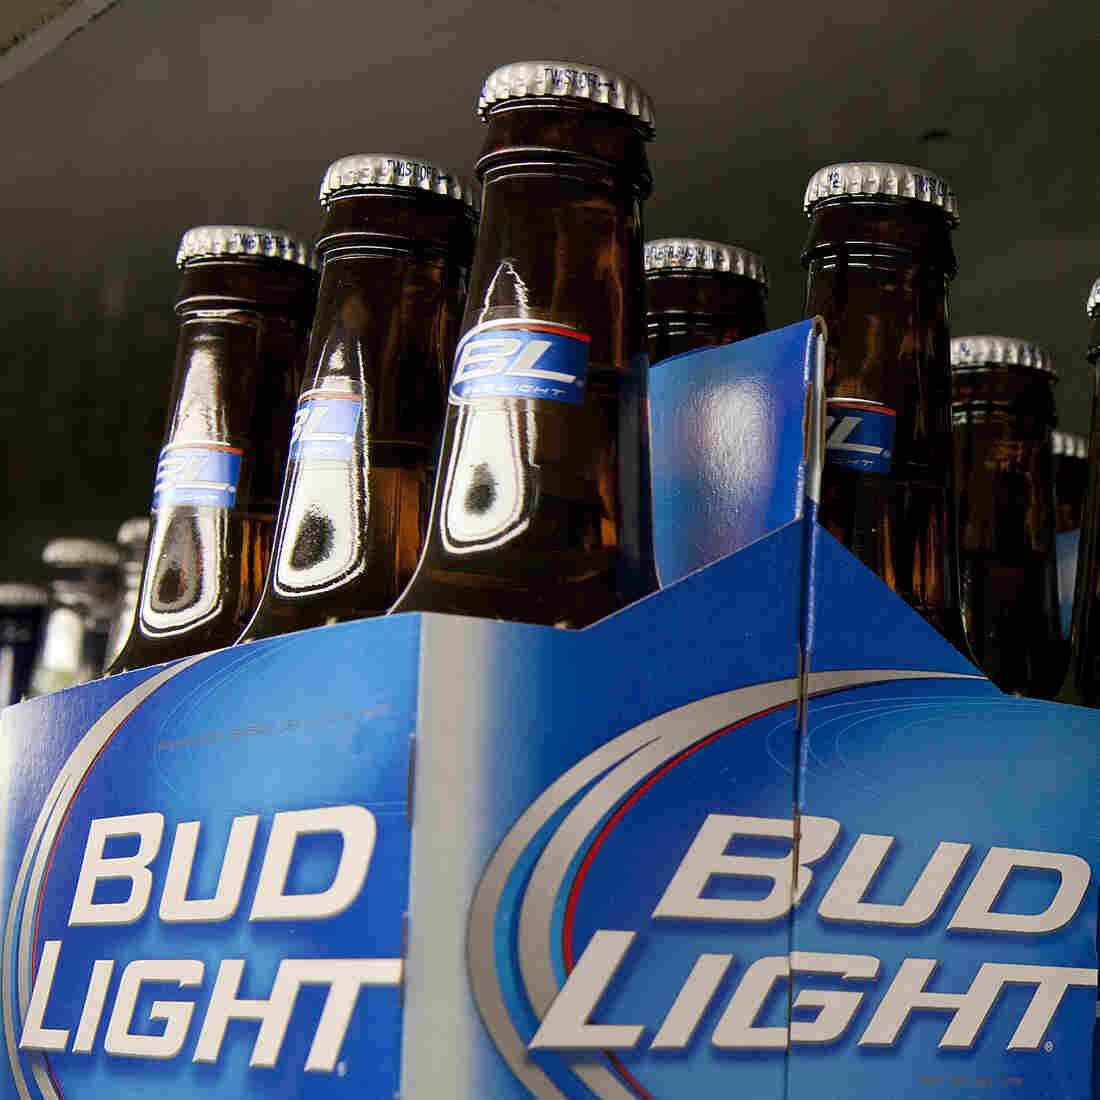 Budweiser May Seem Watery, But It Tests At Full Strength, Lab Says